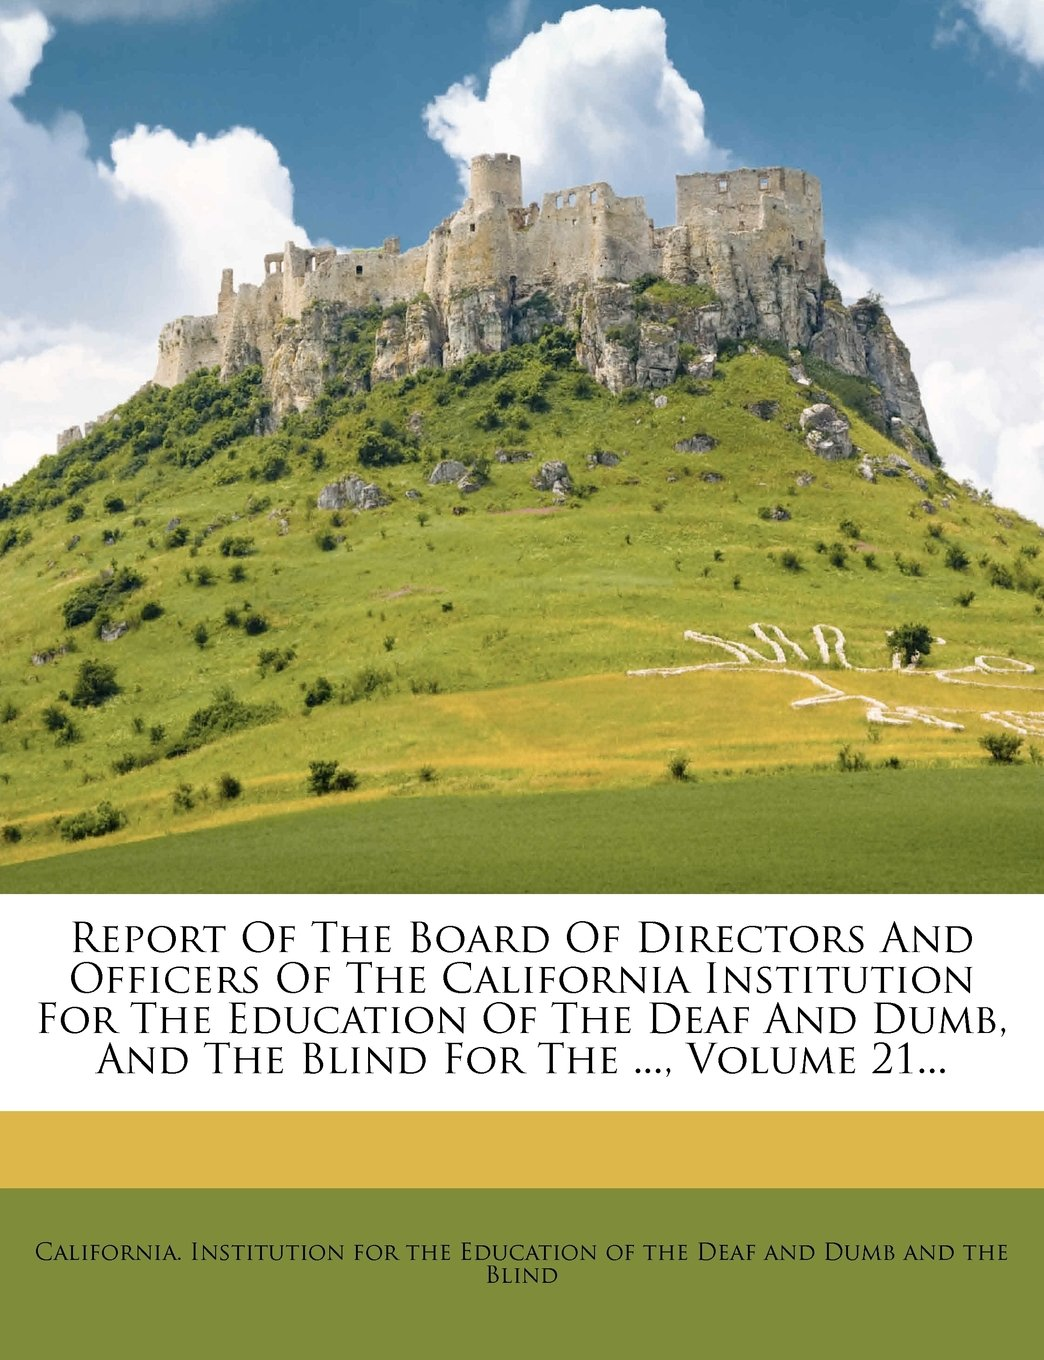 Report Of The Board Of Directors And Officers Of The California Institution For The Education Of The Deaf And Dumb, And The Blind For The ..., Volume 21... PDF